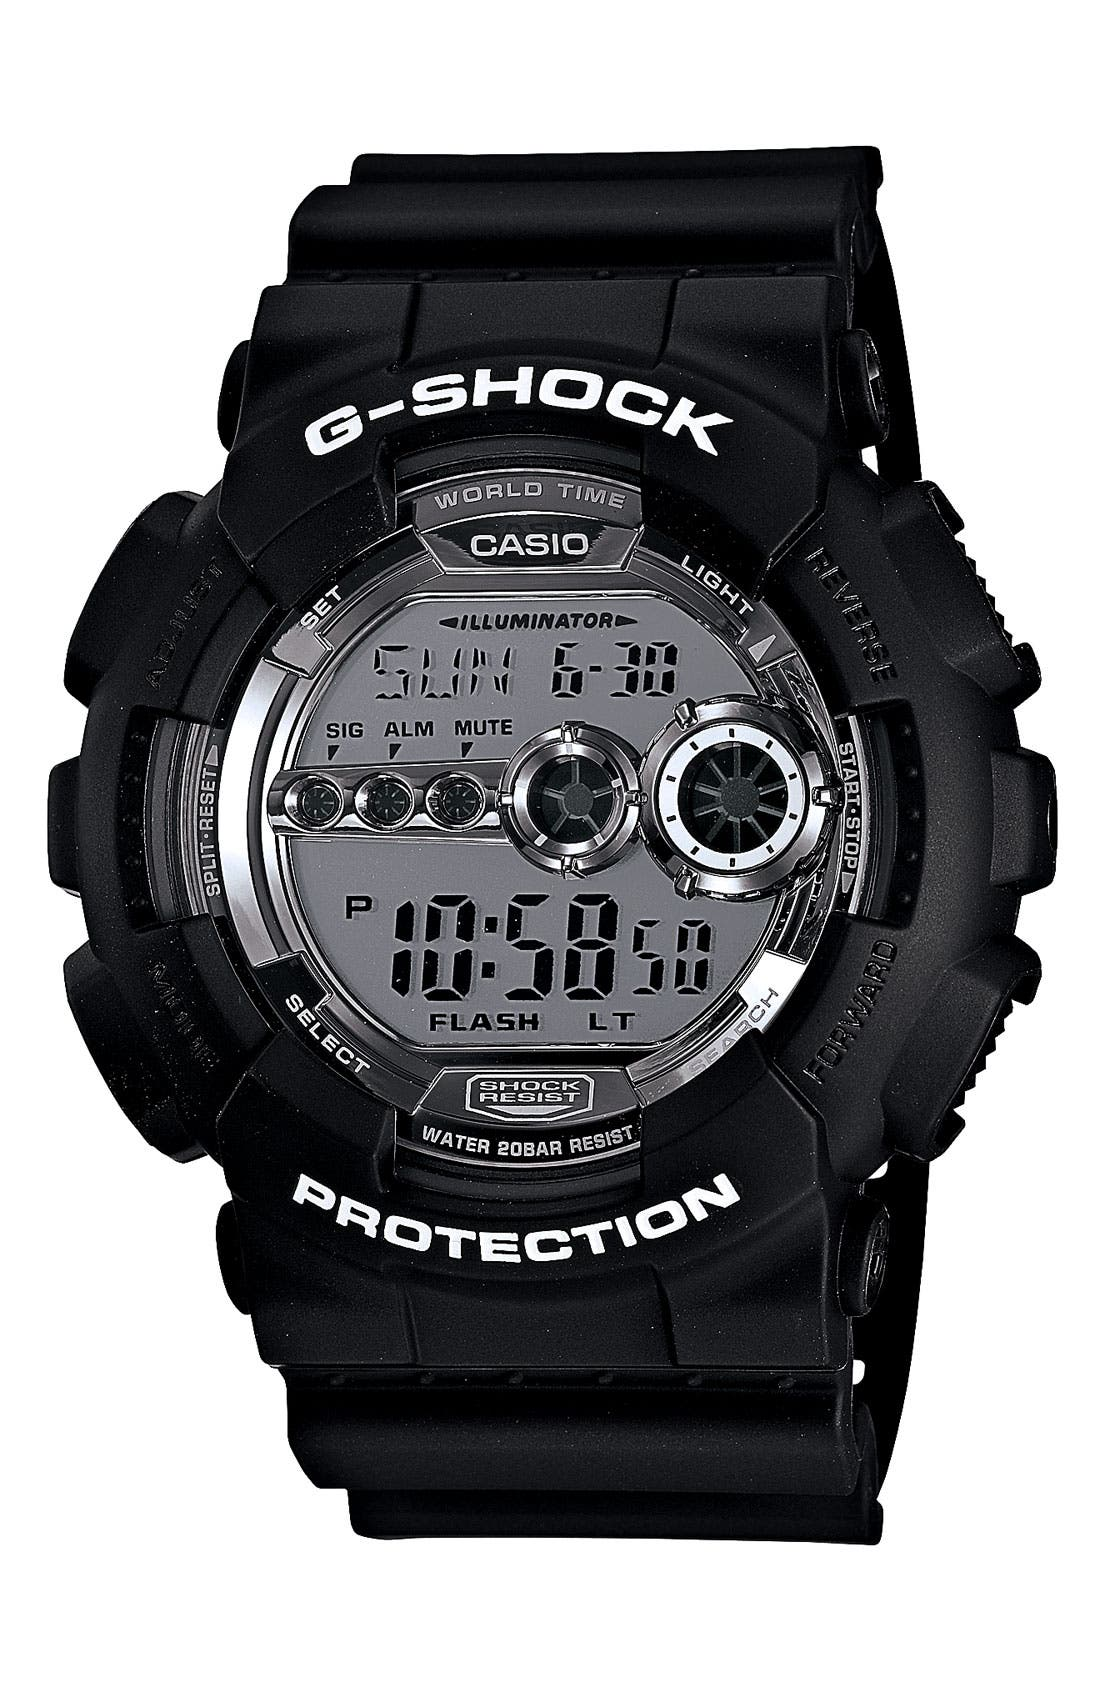 Main Image - G-Shock Digital Watch, 55mm x 52mm